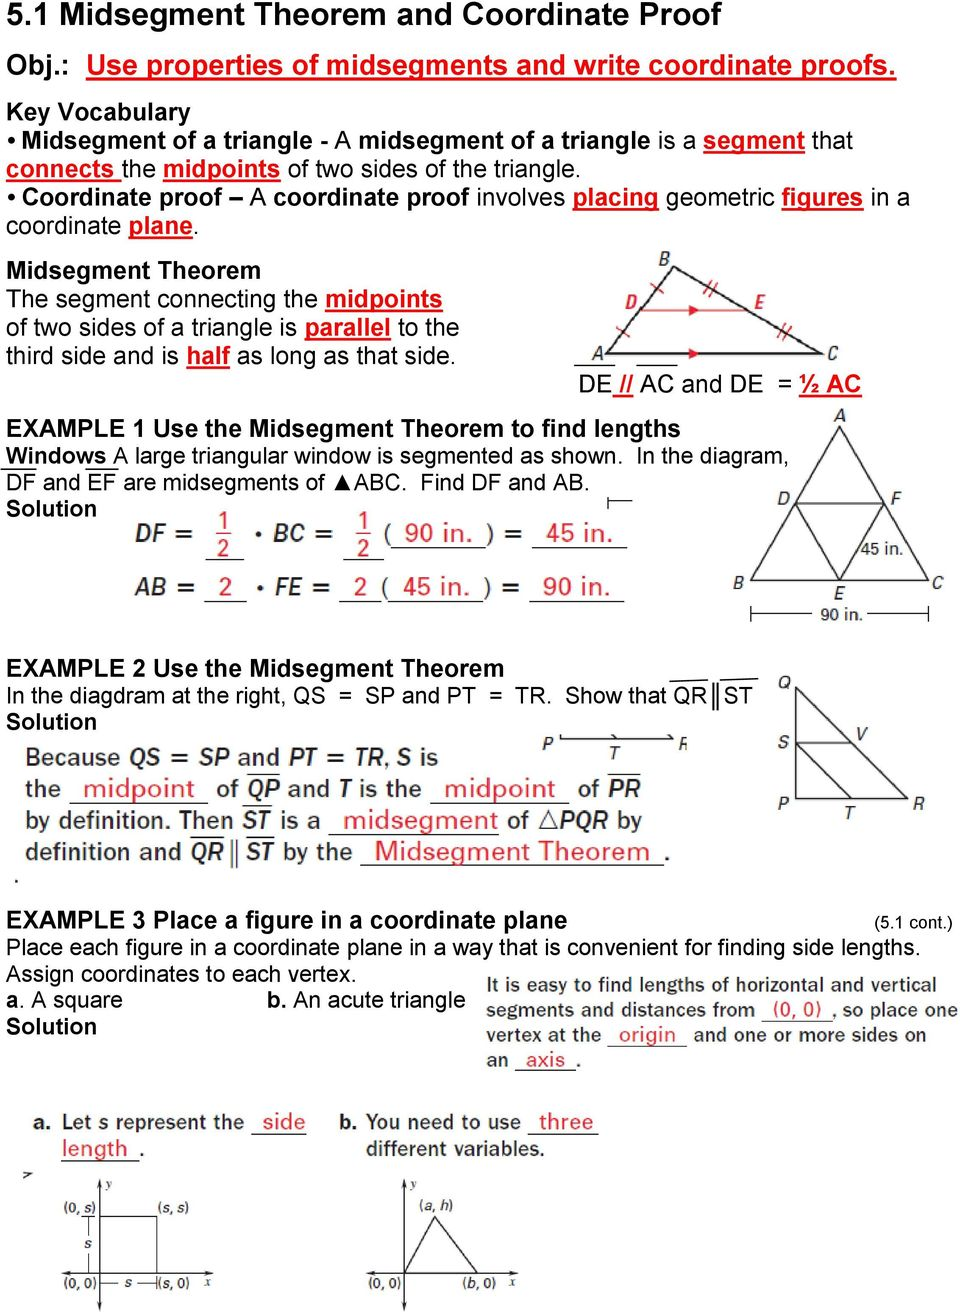 Coordinate proof A coordinate proof involves placing geometric figures in a coordinate plane.